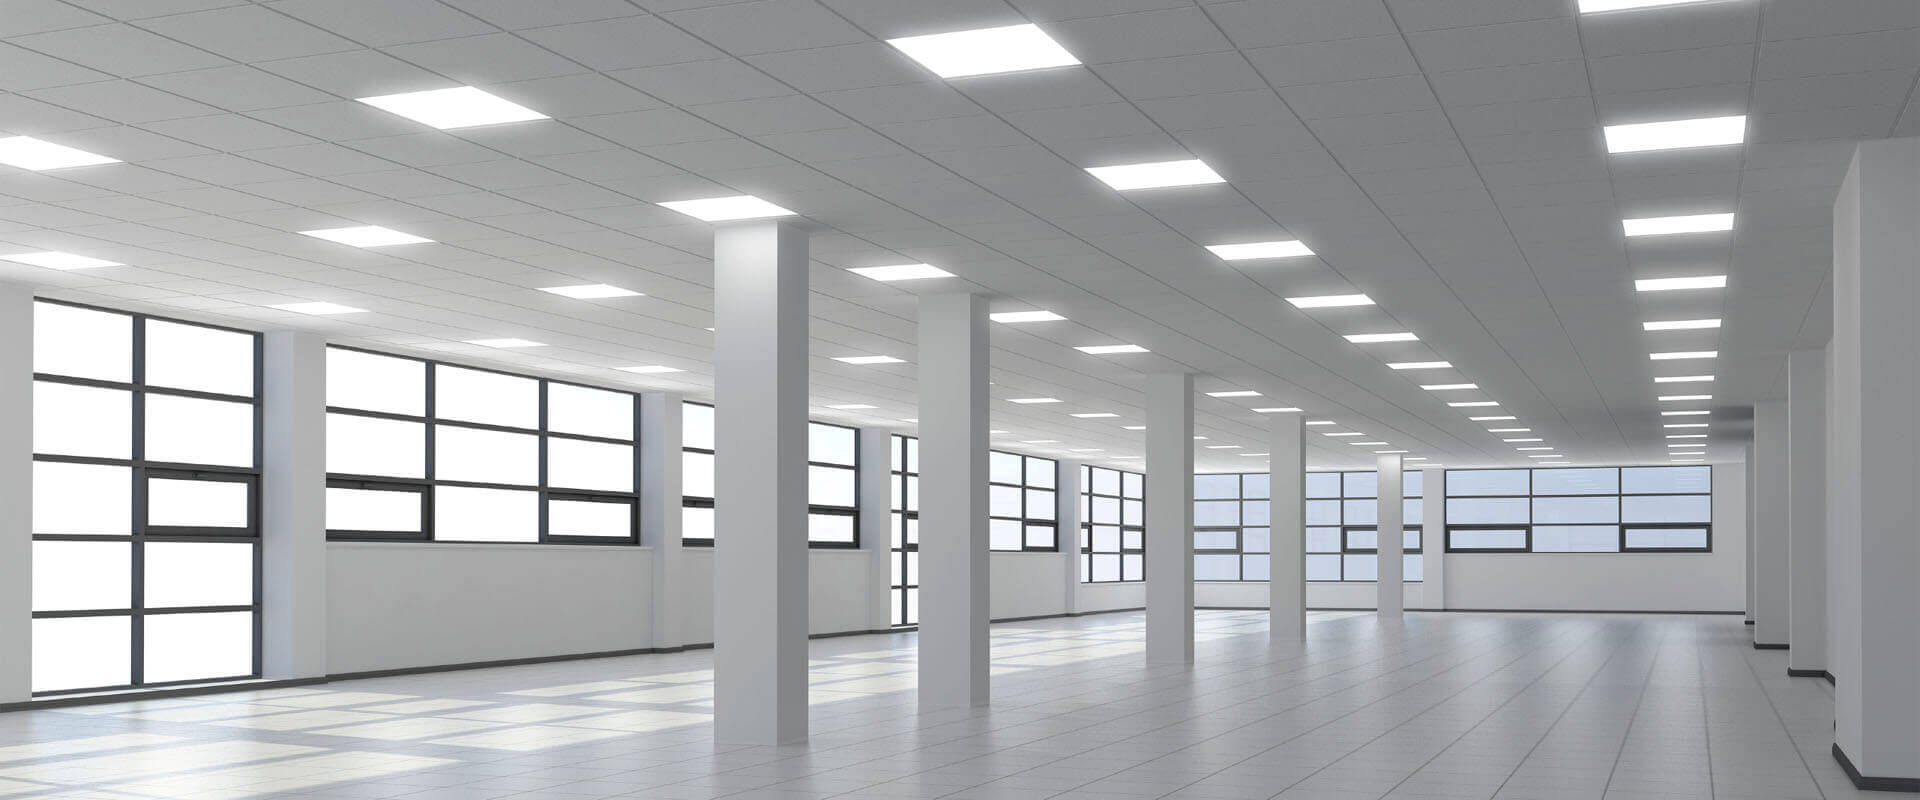 LED lighting services in Harlow